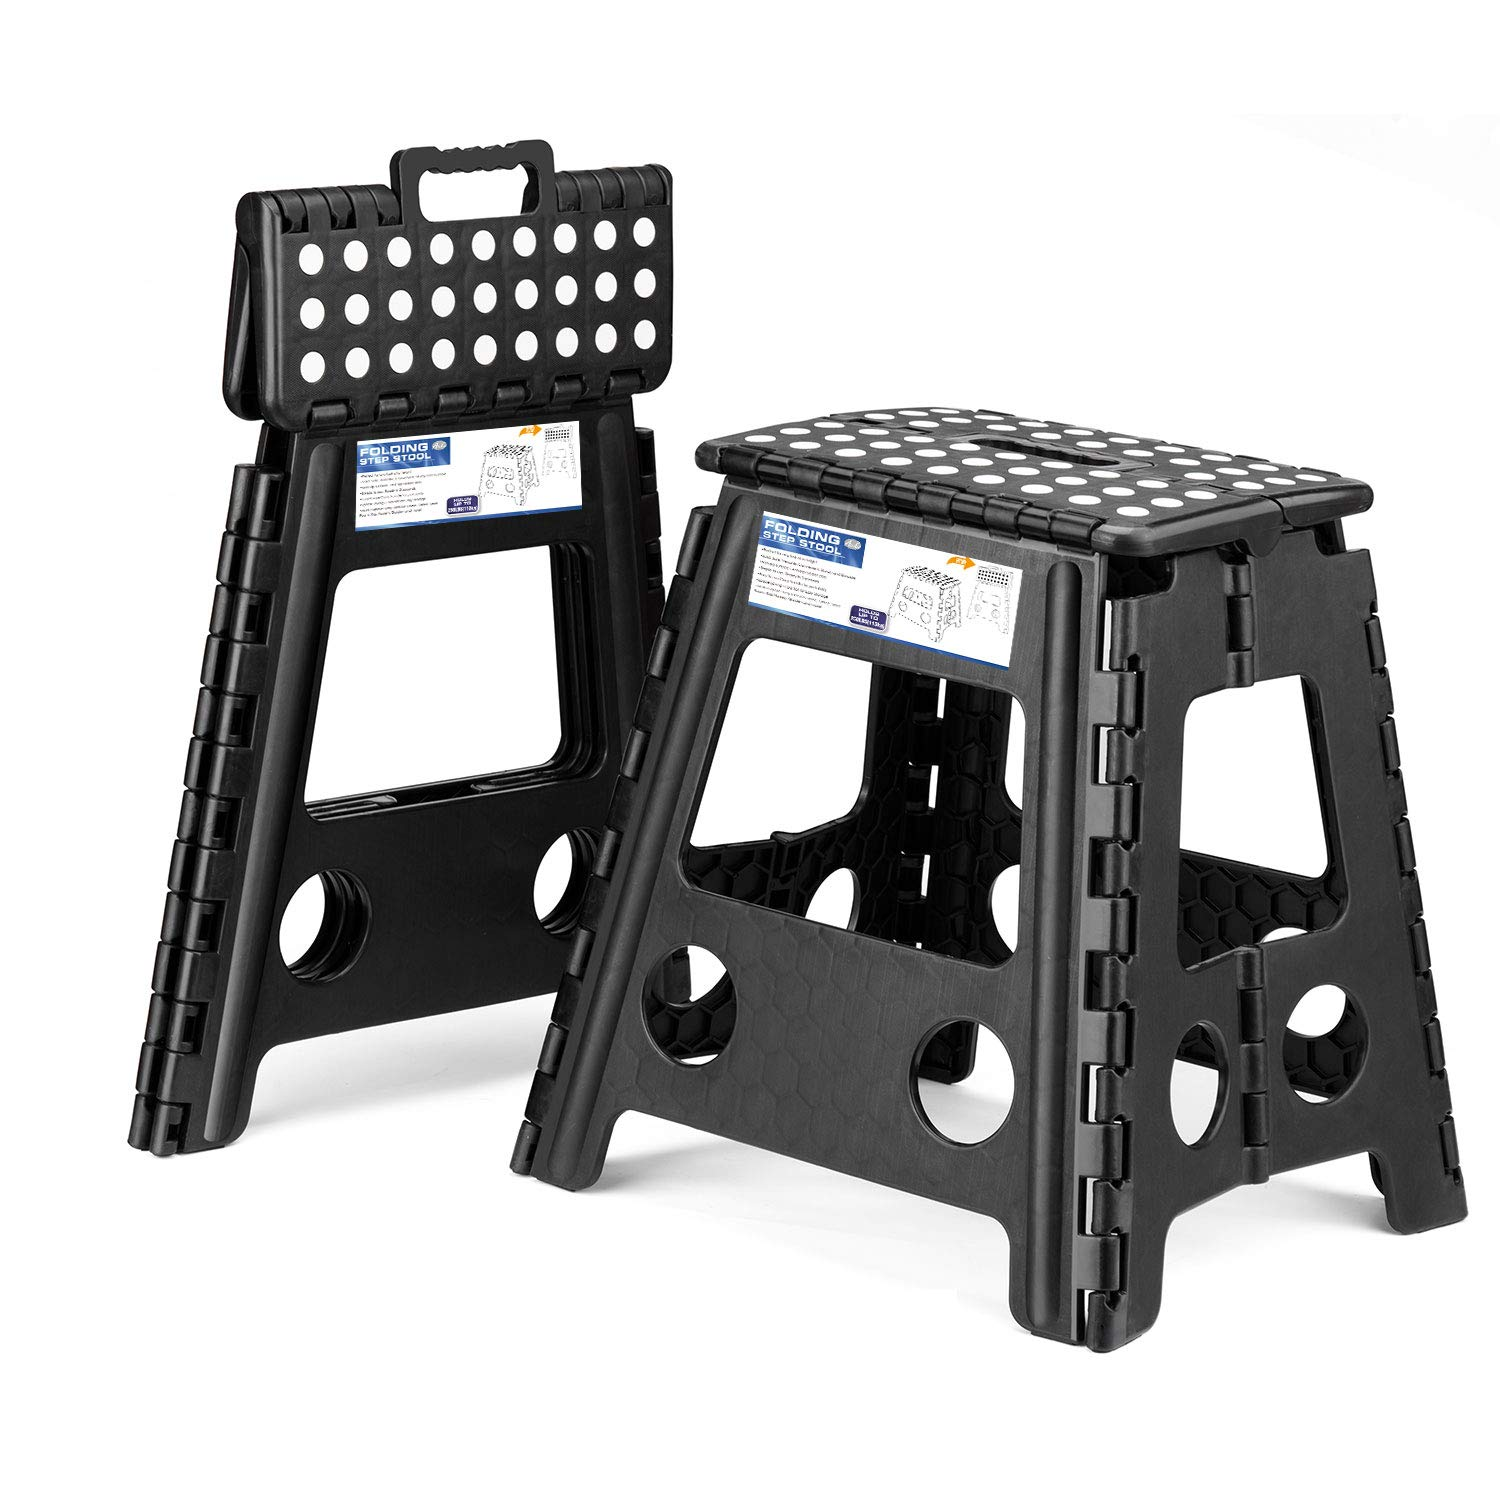 Acko 2 Pack 16 Inches Super Strong Folding Step Stool for Adults, Kitchen Stepping Stools, Garden Step Stool Black by Acko